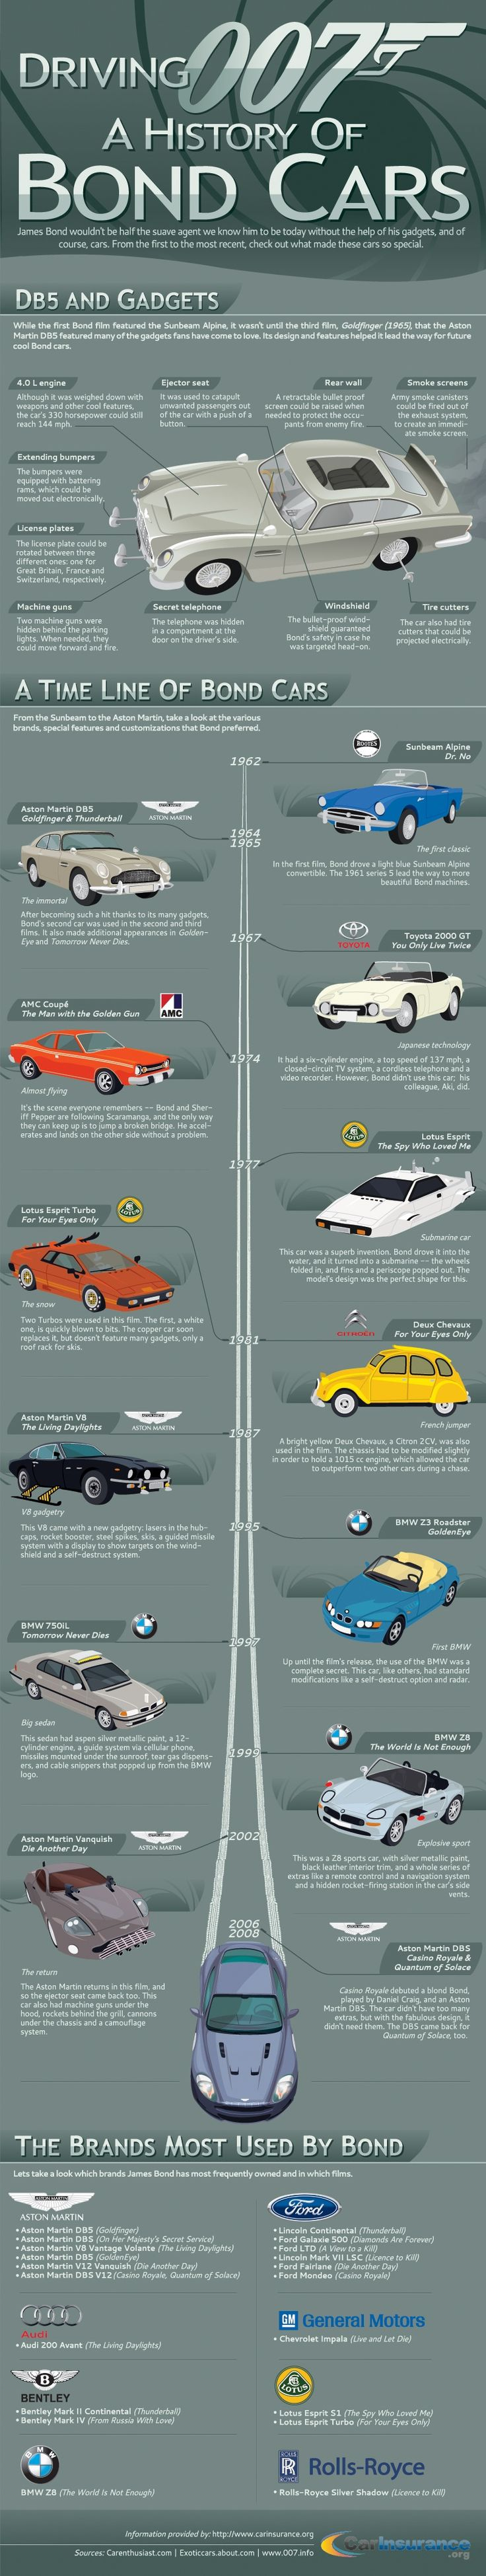 James Bond's cars !